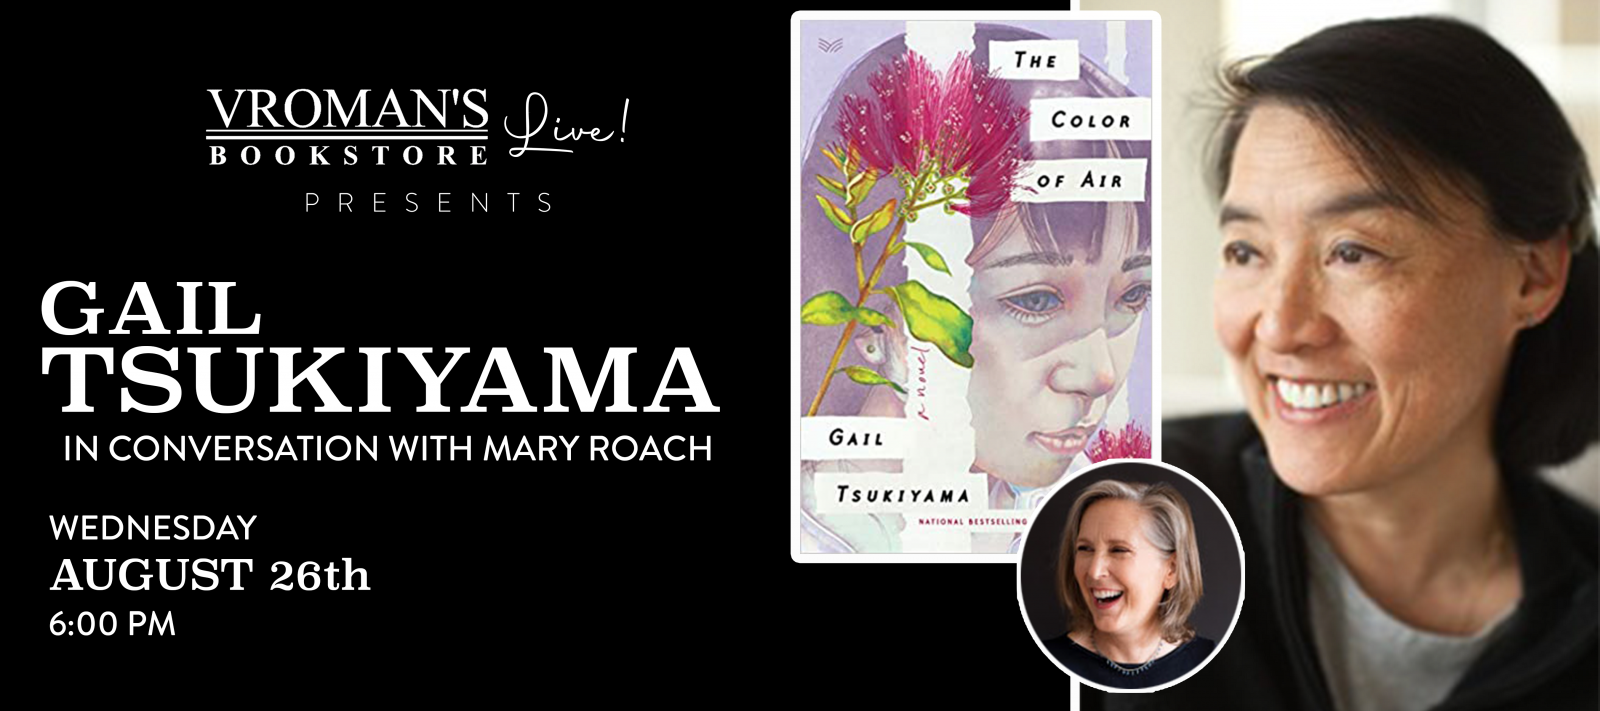 Vroman's Live presents Gail Tsukiyama, in conversation with Mary Roach on Wednesday August 26th at 6pm